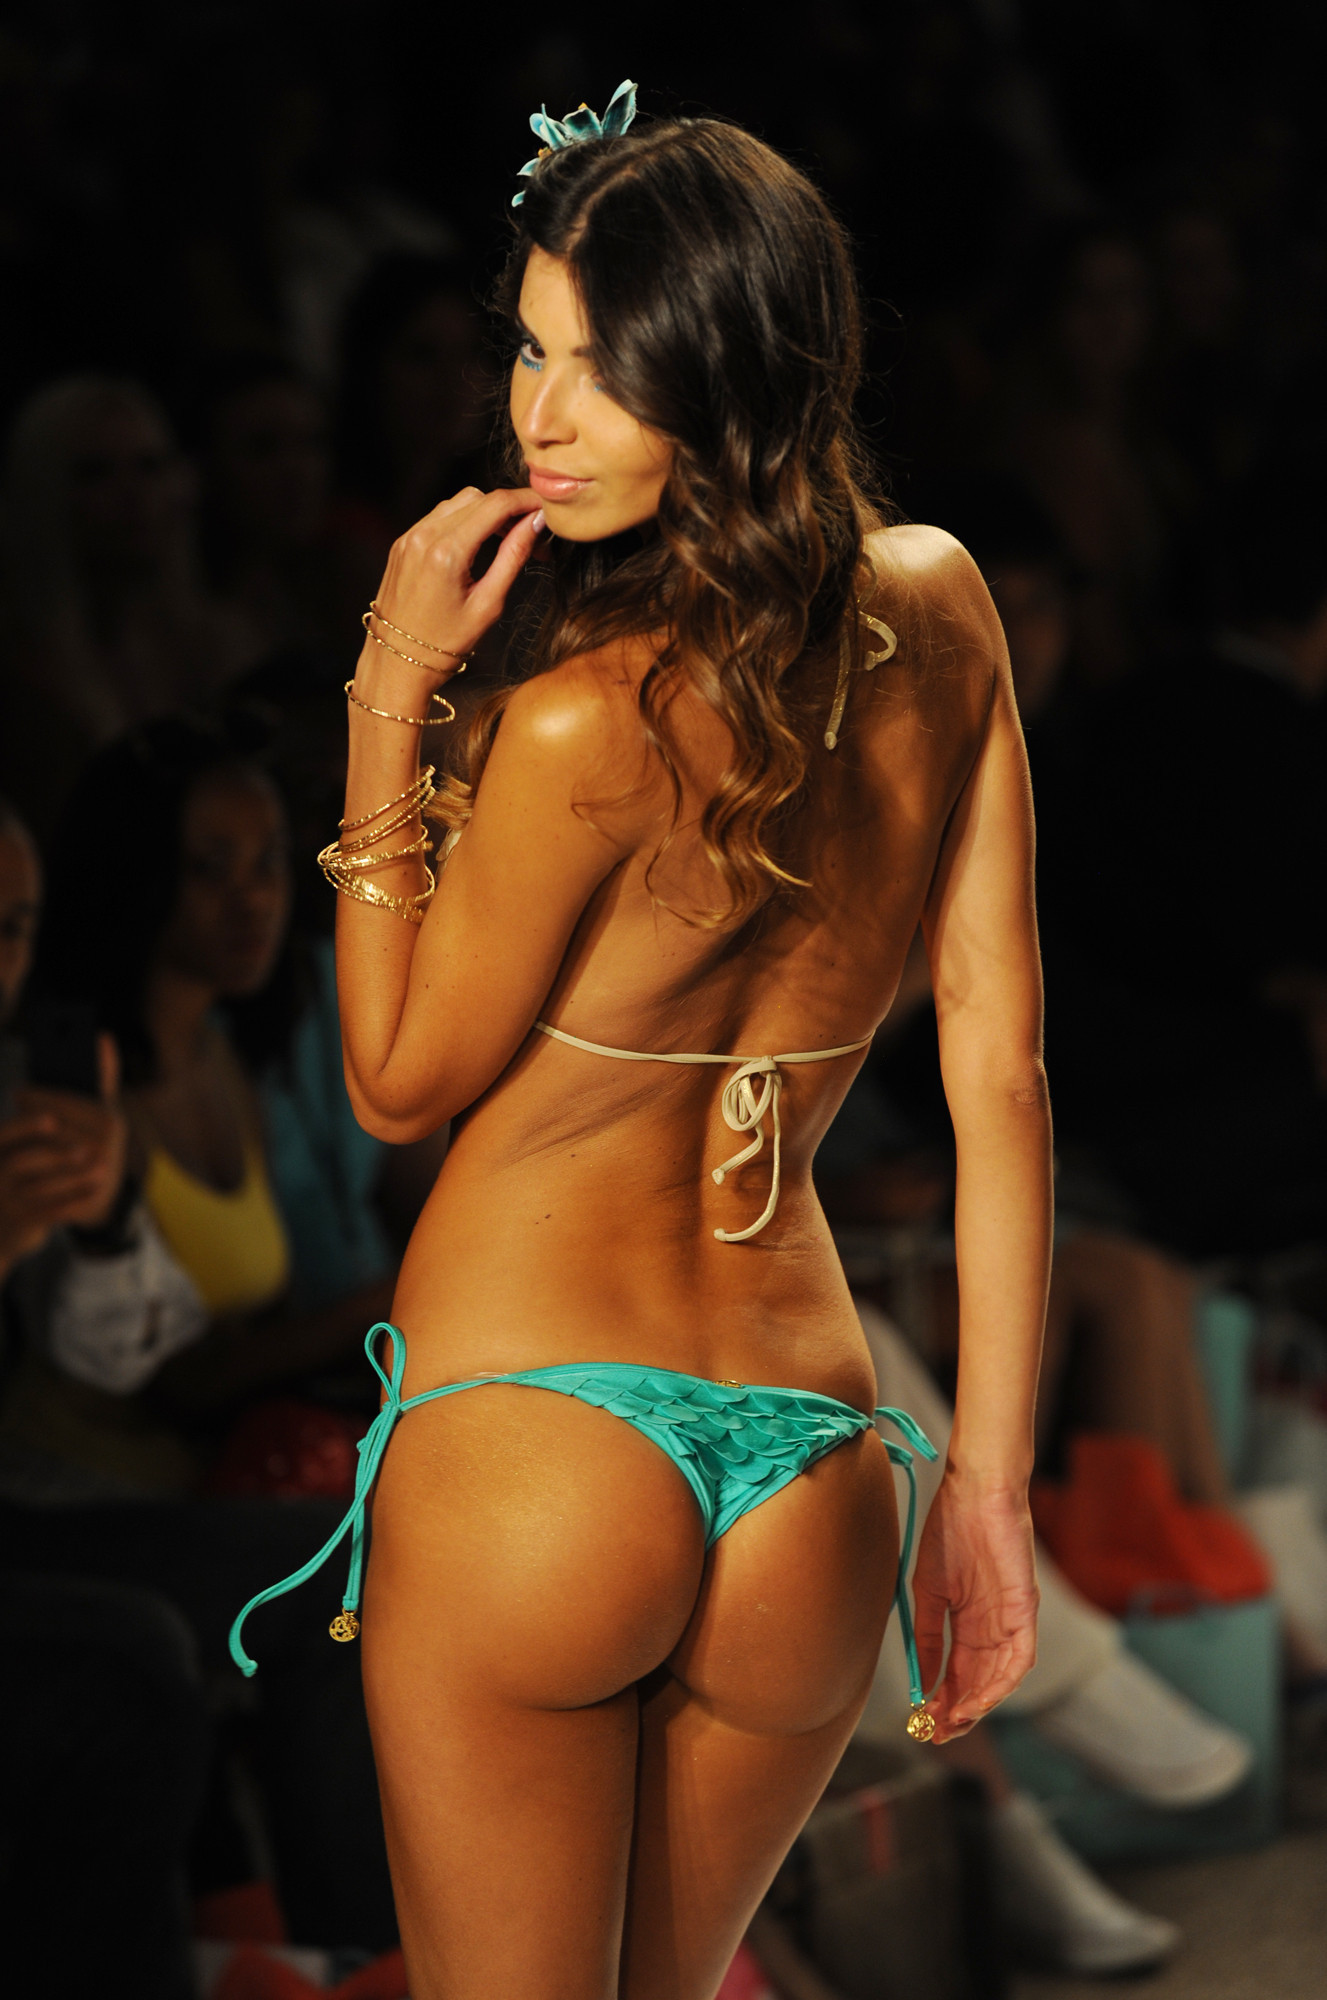 A look back at Miami Swim Week 2013 - Luli Fama